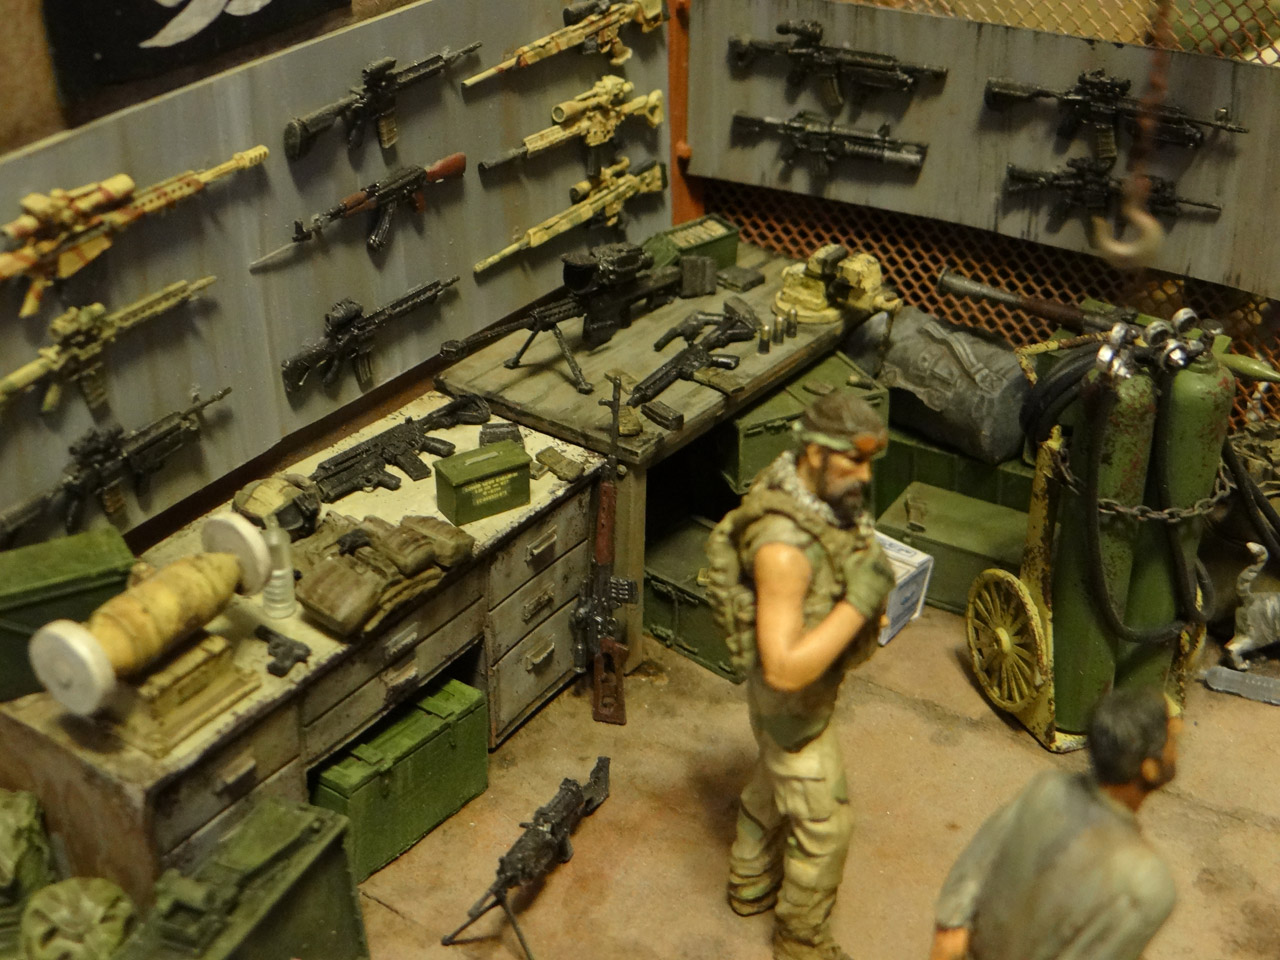 Dioramas and Vignettes: Enforcement to democracy, photo #22